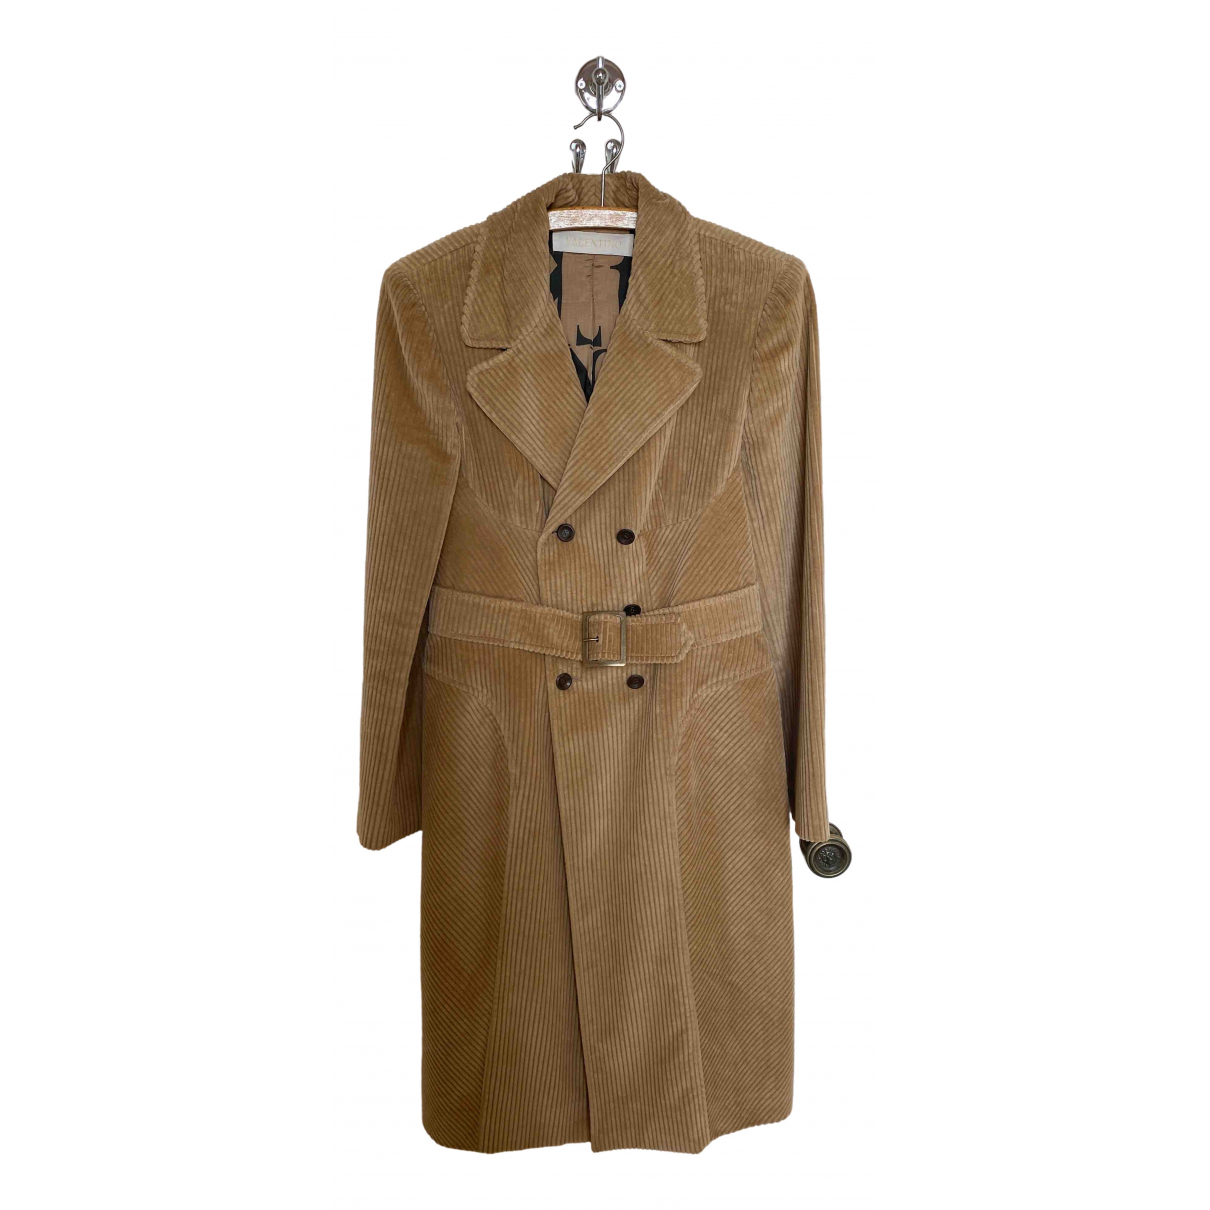 Valentino Garavani \N Beige Cotton coat for Women 8 UK